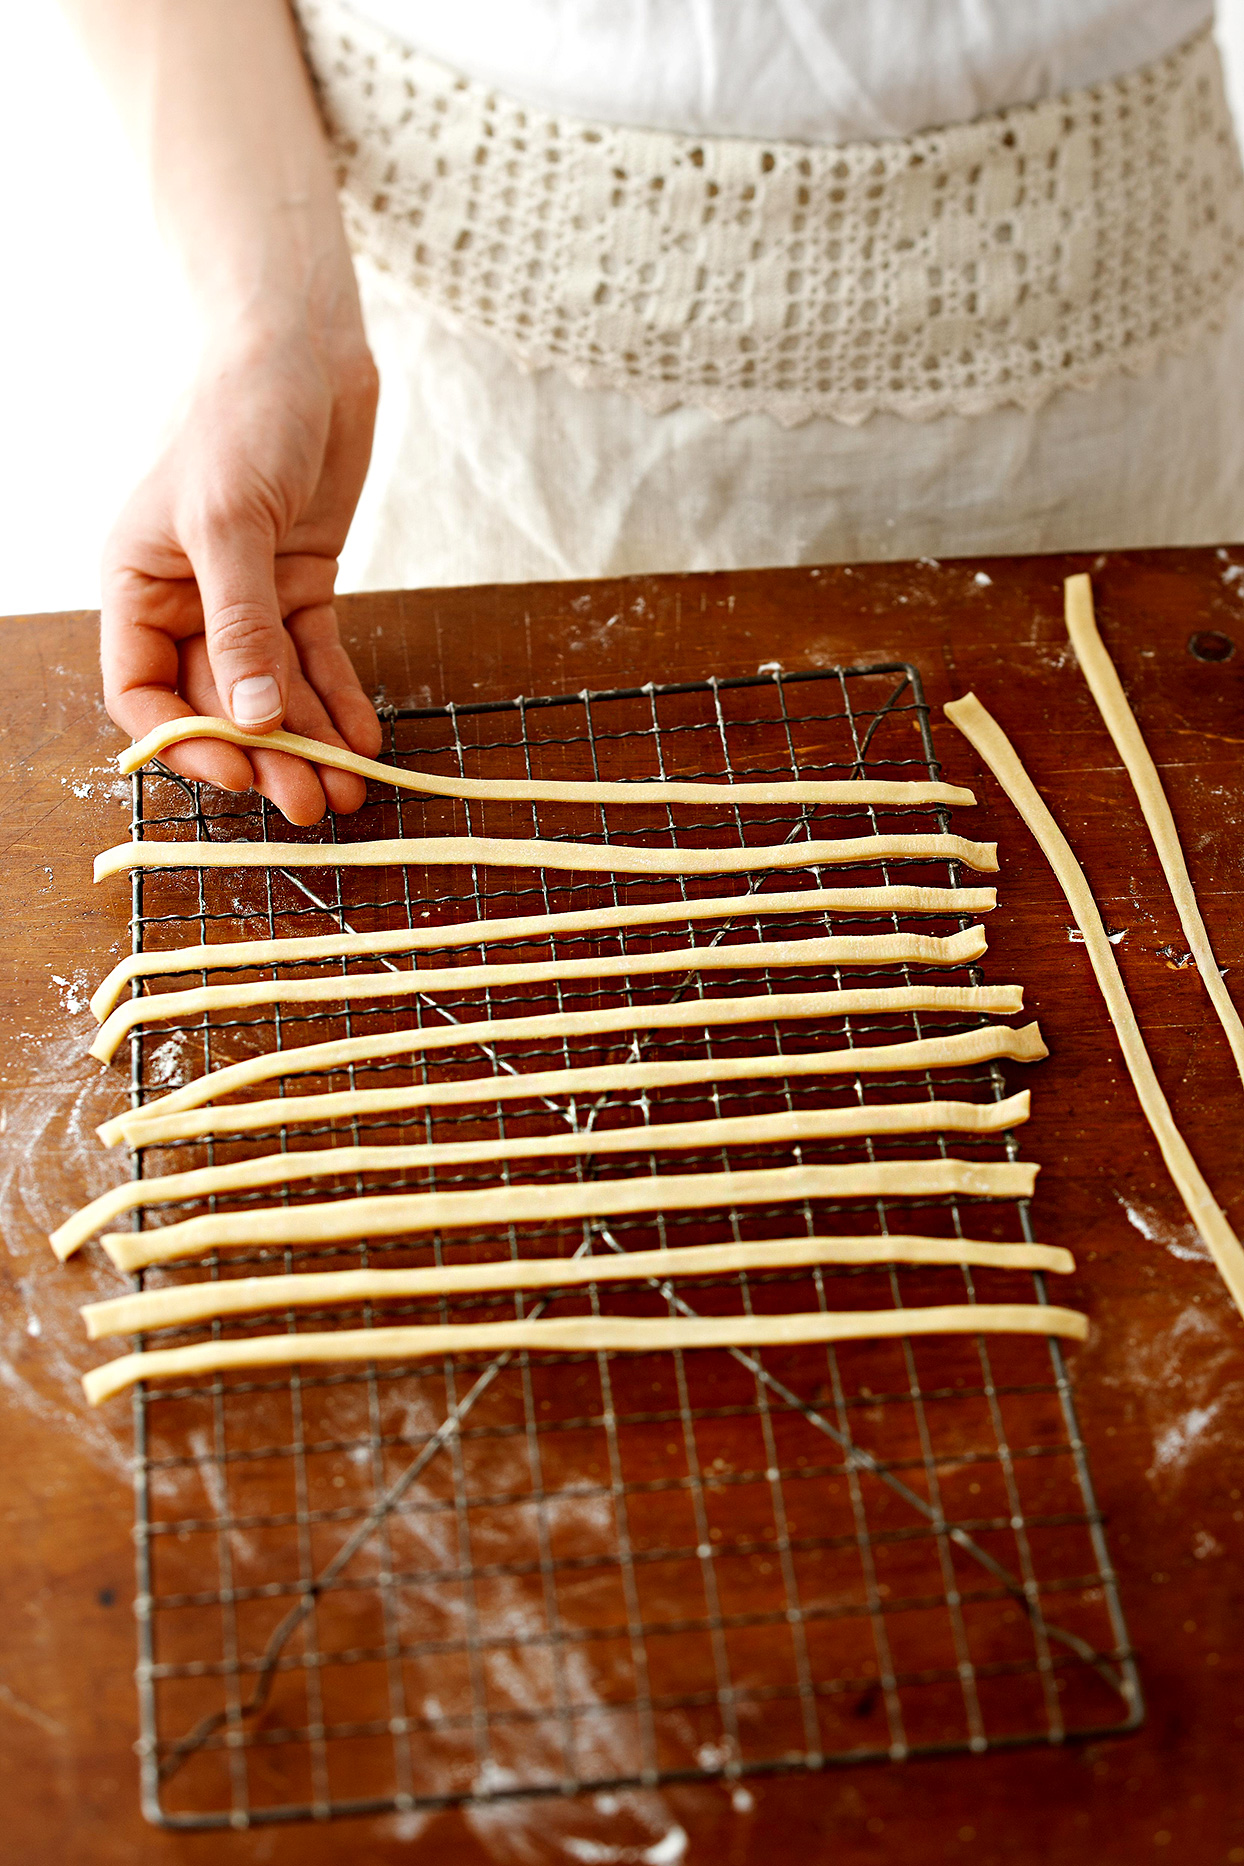 laying homemade noodle strips on wire rack